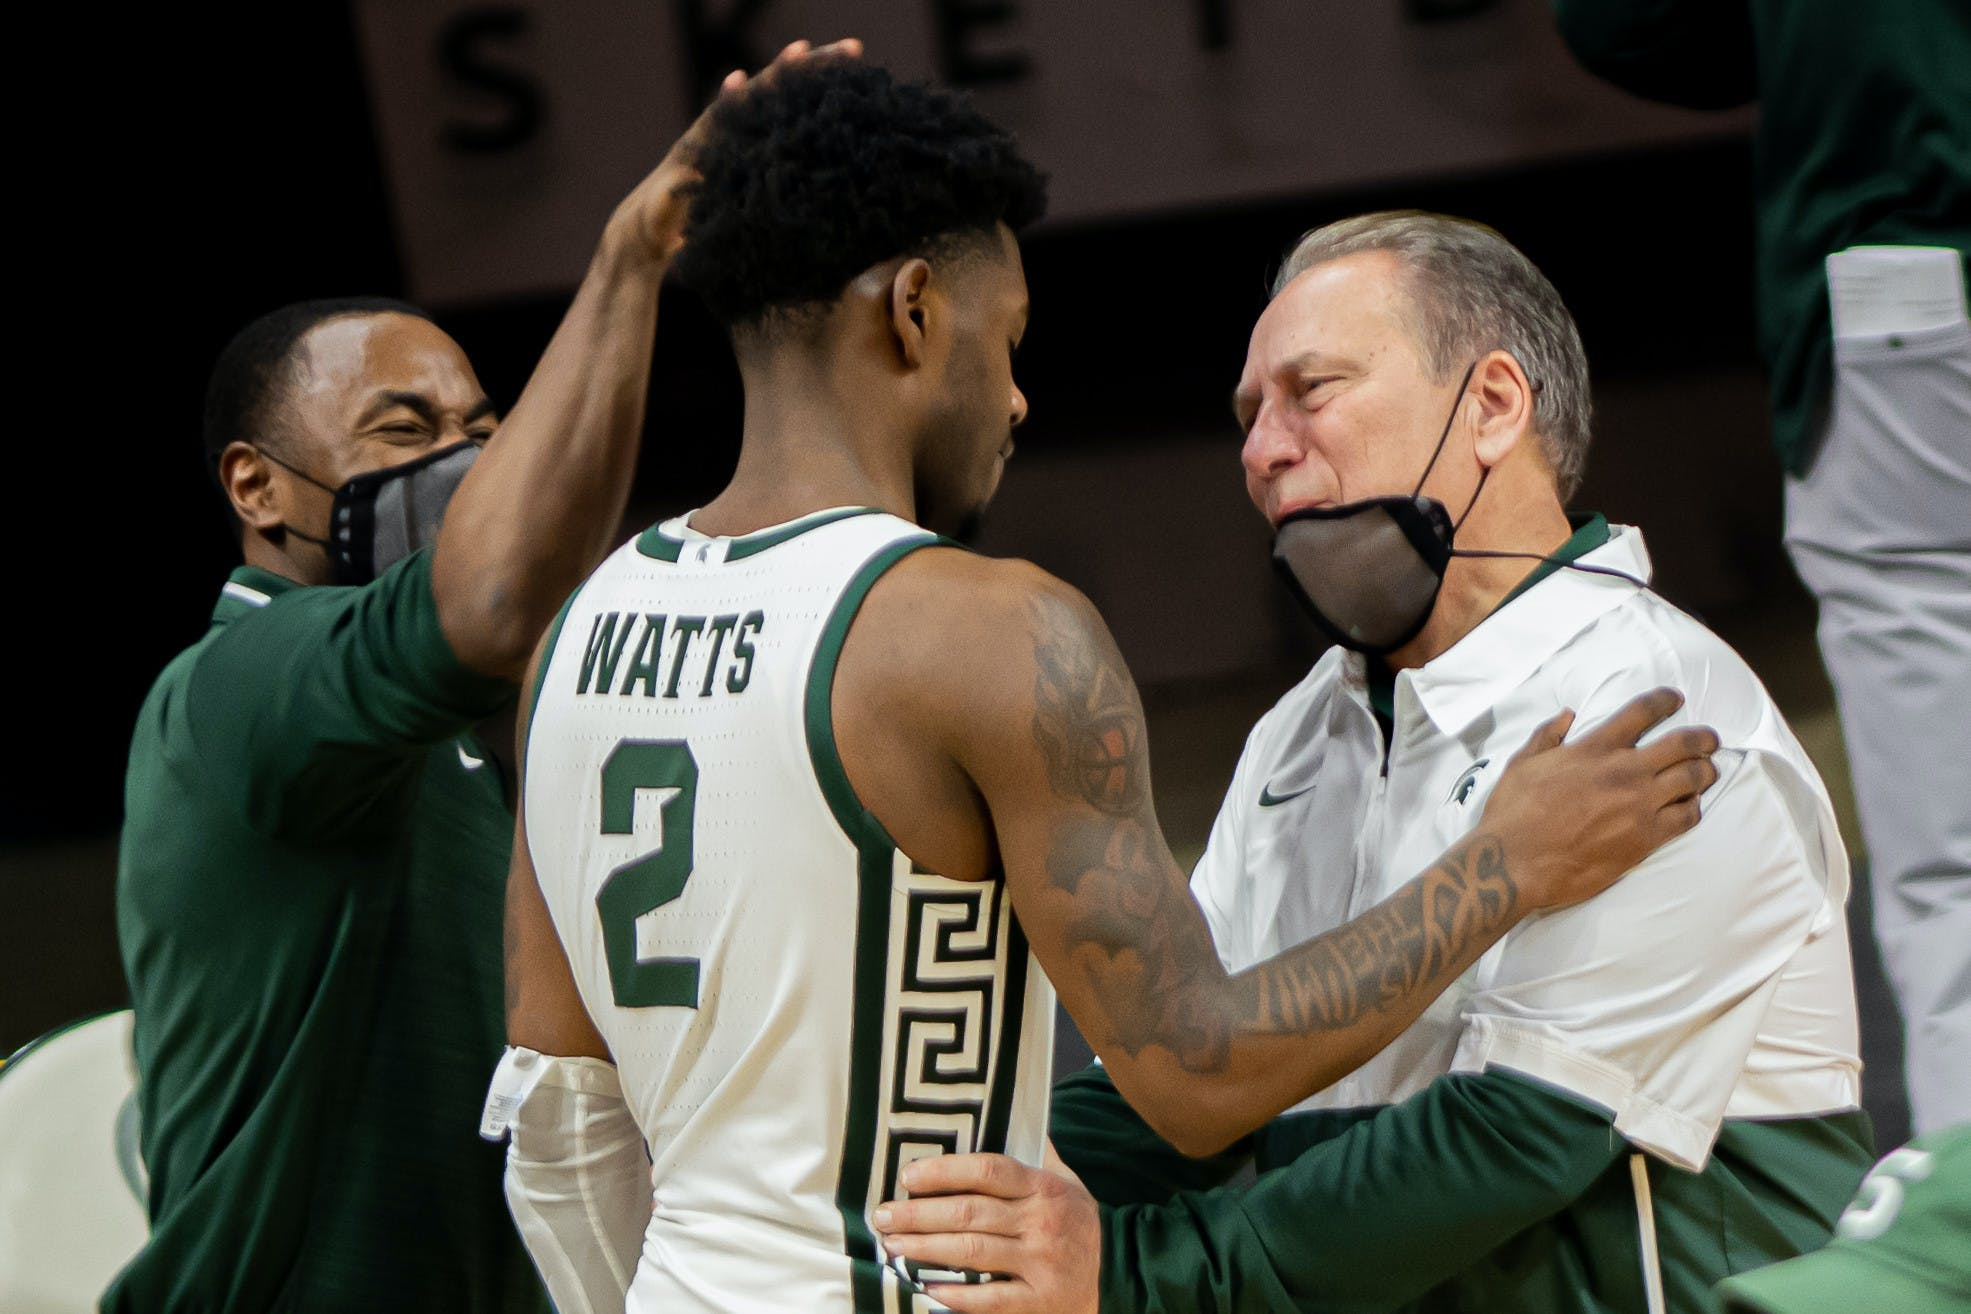 A person wearing an MSU basketball jersey embraces a person wearing a face mask while another person pats their head.